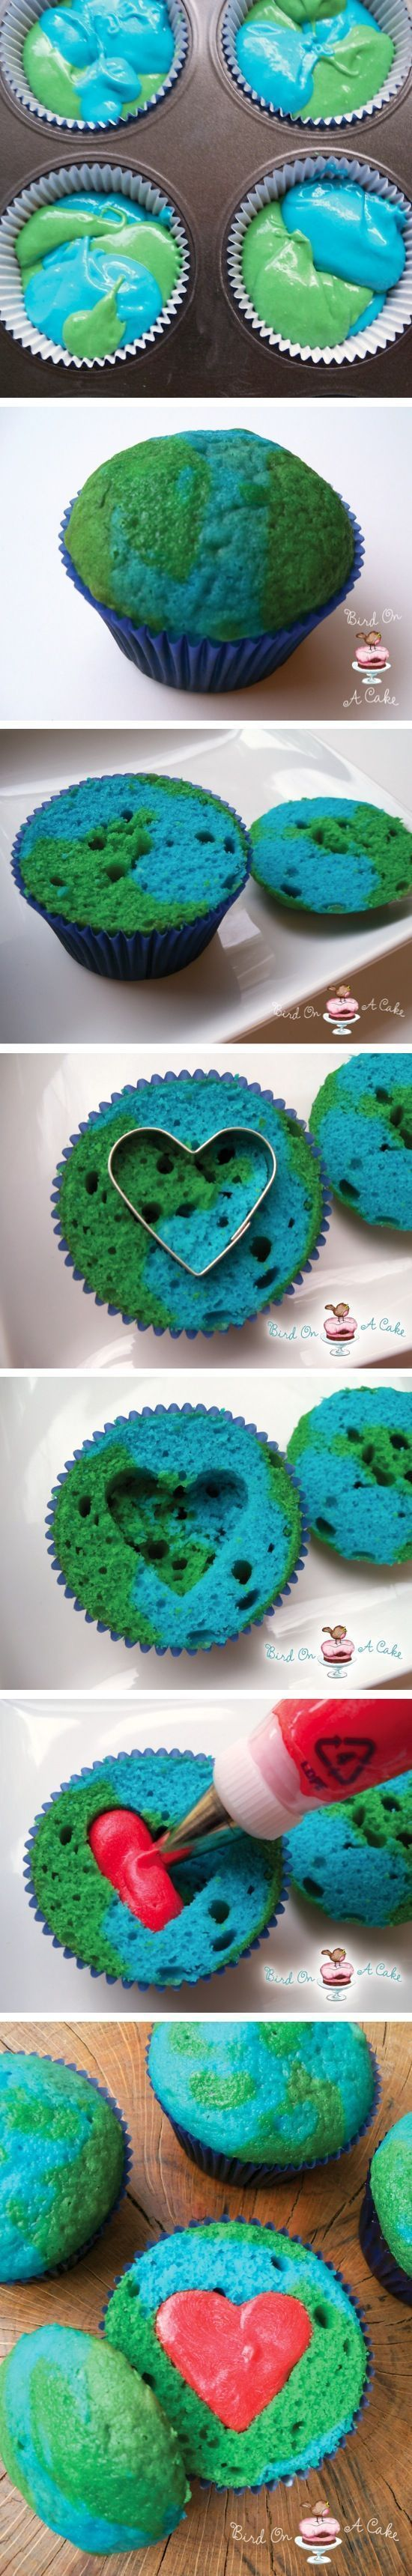 Earth Day cupcakes #earthday